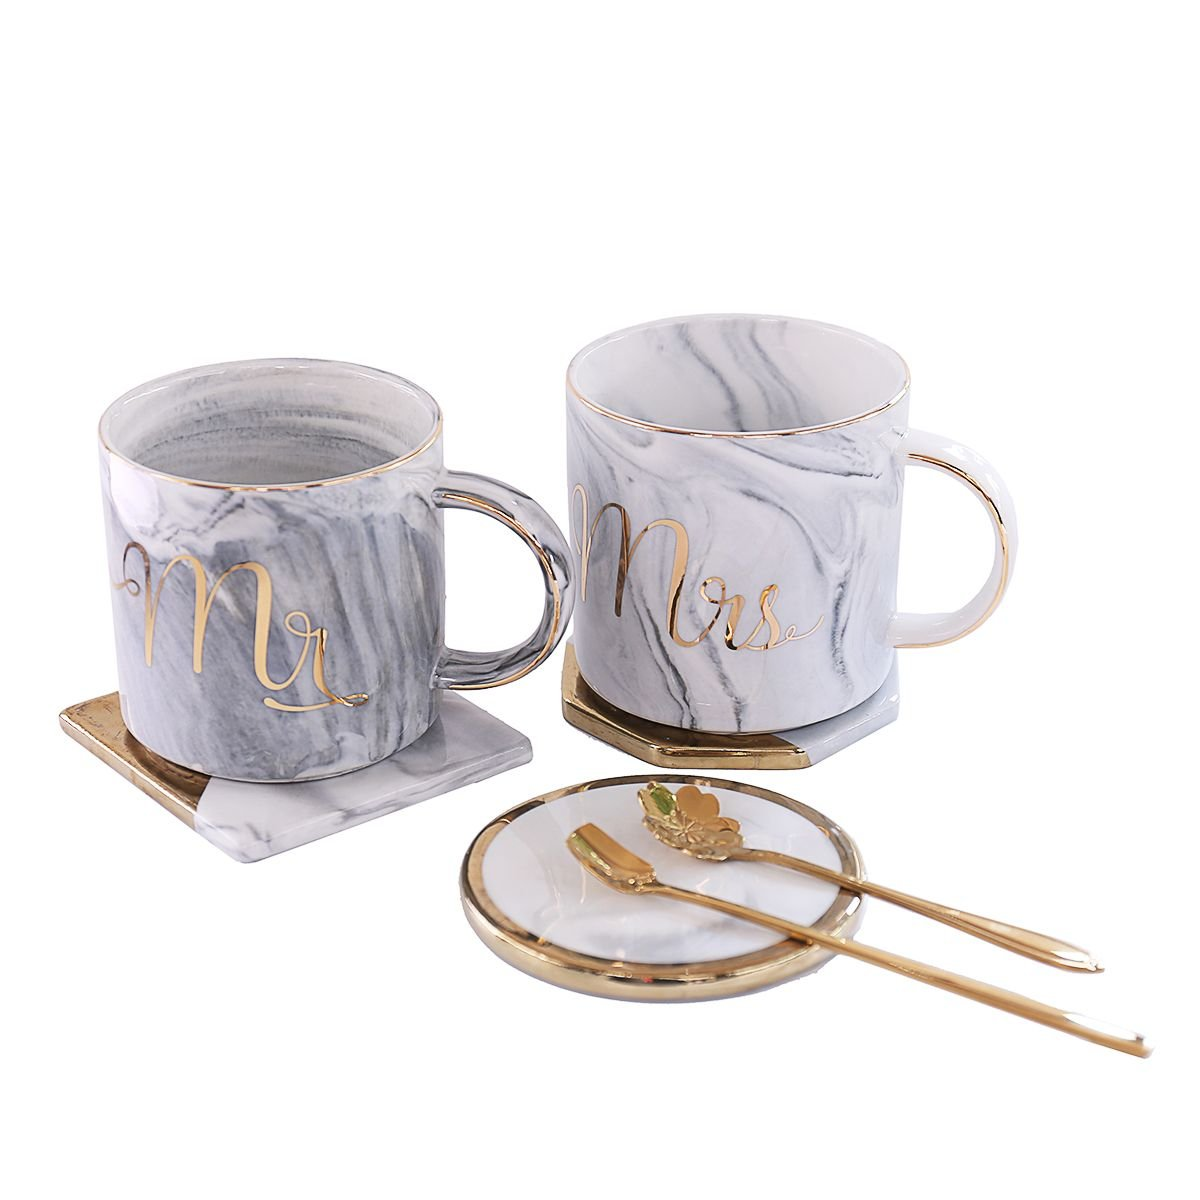 Mr and Mrs Couples Ceramic Coffee Mug Set Unique Wedding Gift For Bride and Groom - His and Hers Anniversary Present Husband and Wife -Engagement Gifts For Him Her For Parents for Valentine's day